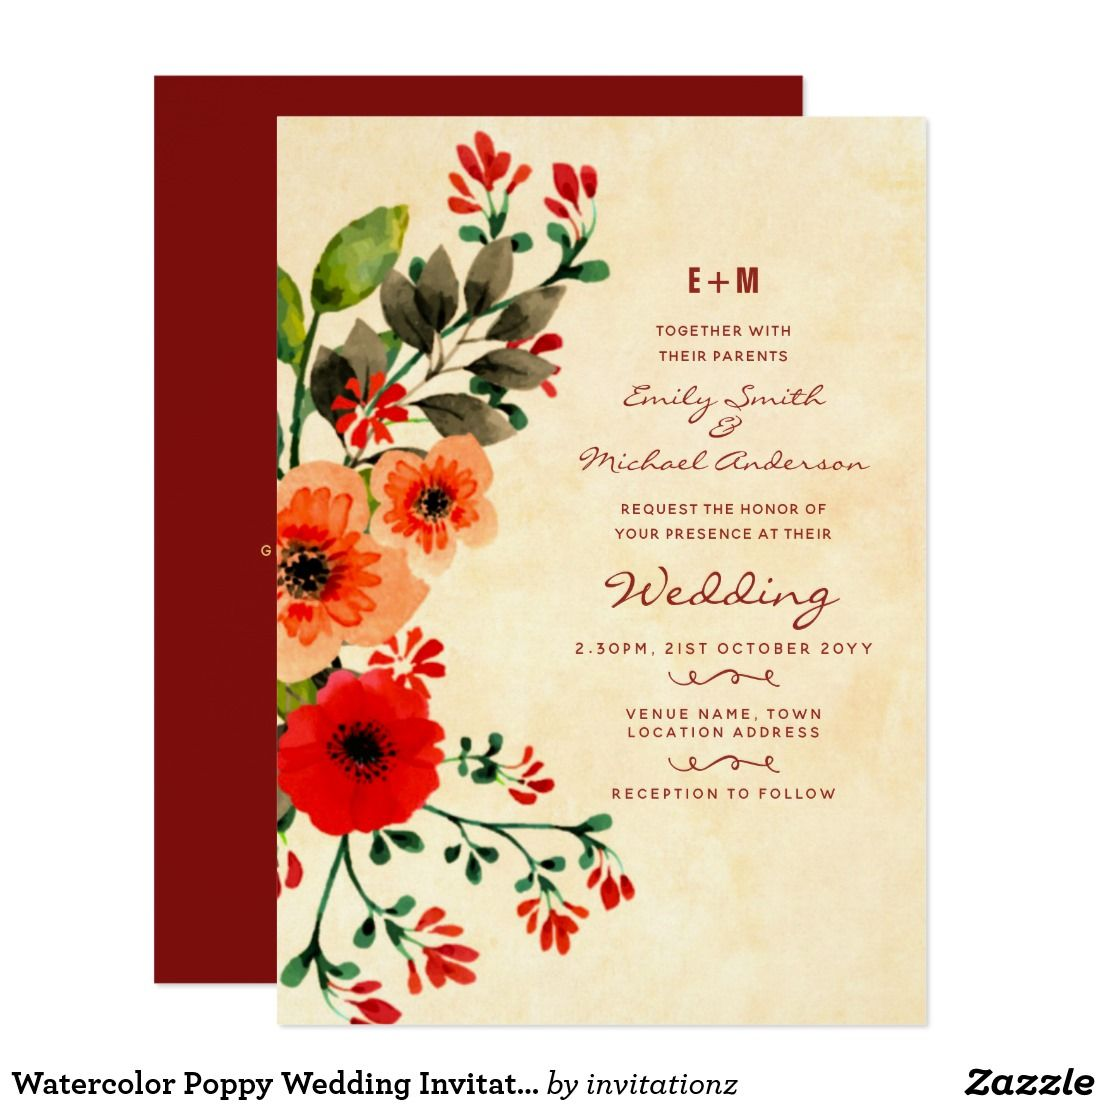 Watercolor Poppy Wedding Invitations Peach Red | Pinterest | Wedding ...